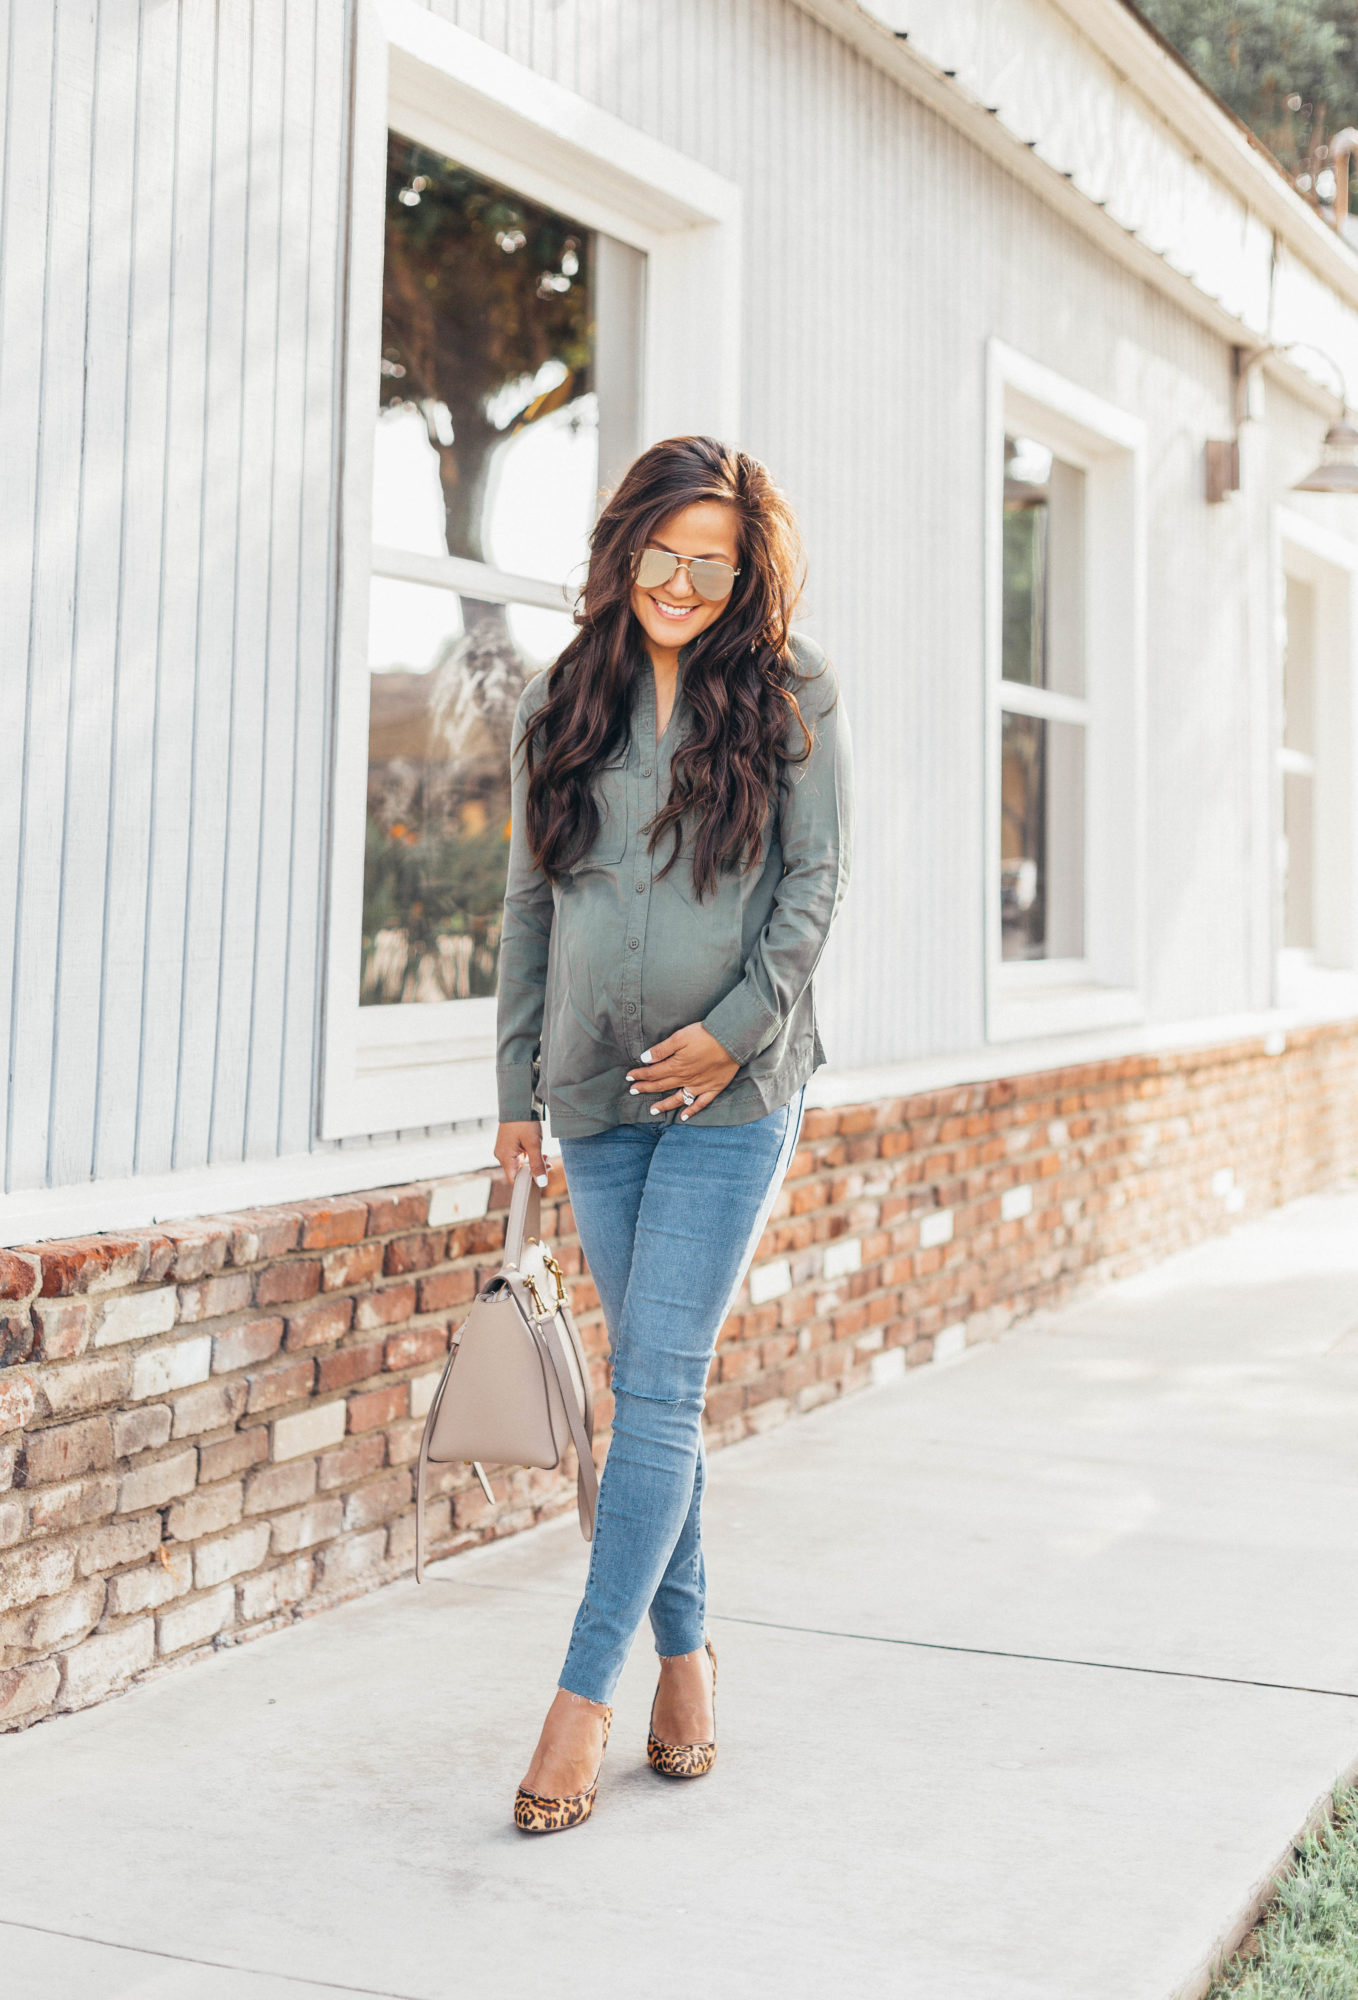 7b749959feb83 If there's one piece of advice I can give pregnant women when it comes to  clothes, it's to shop items that are transitional. What I mean by that is,  ...